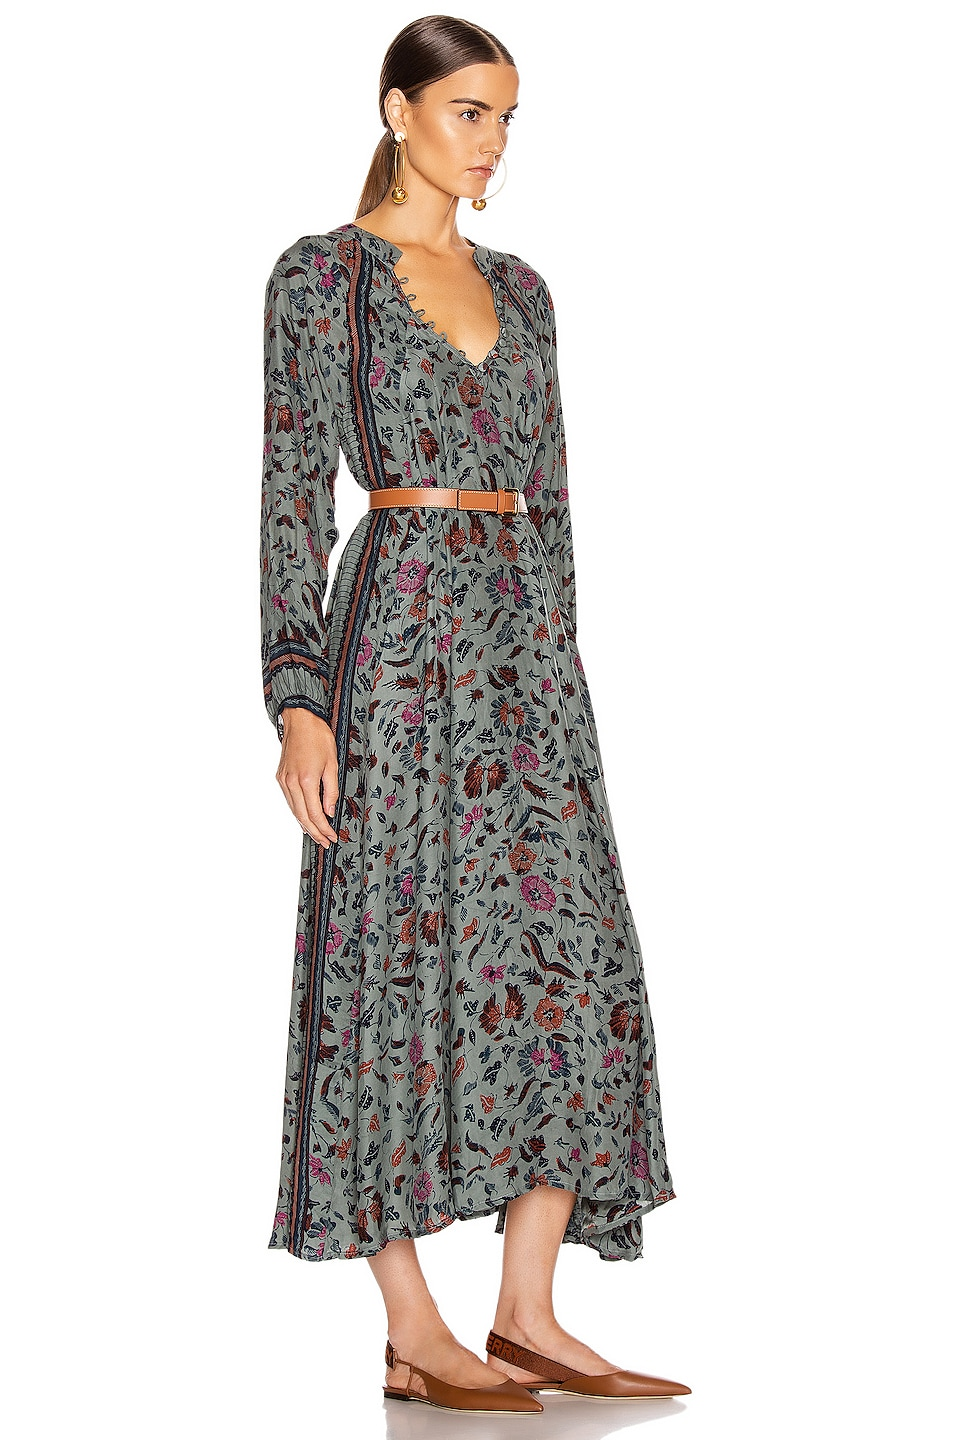 Image 2 of Natalie Martin Fiore Maxi Dress in Wildflower Slate